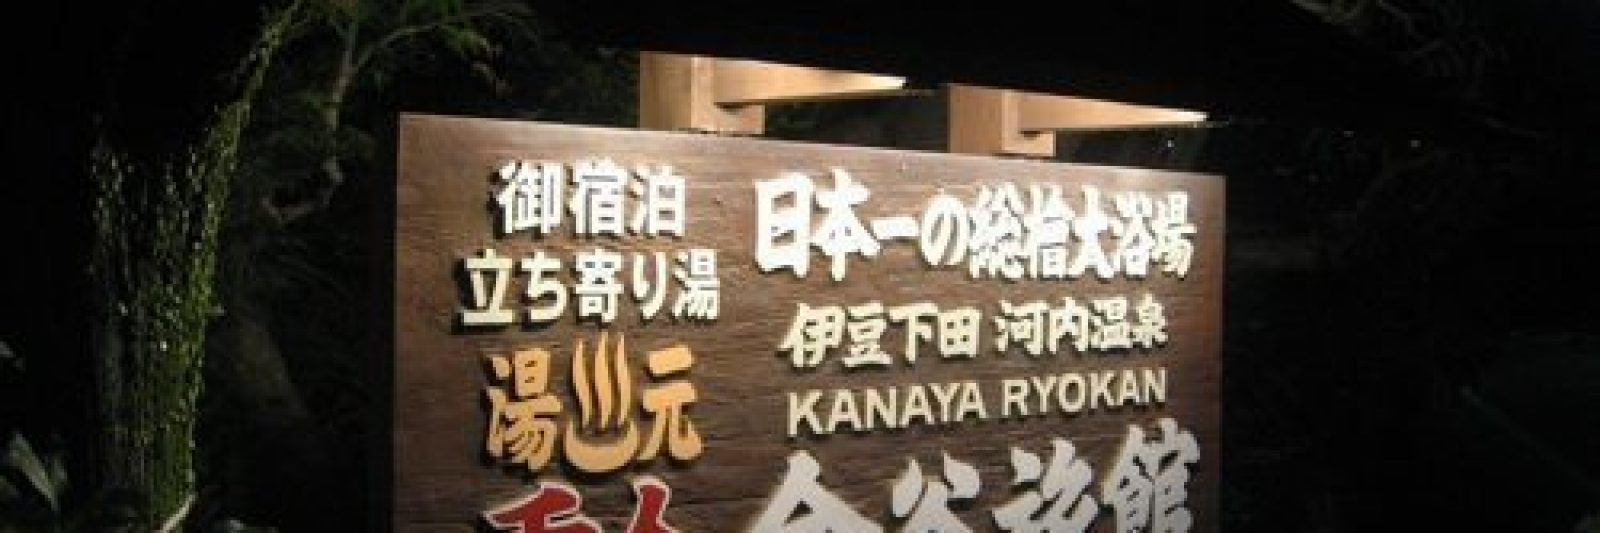 kanaya ryokan sign